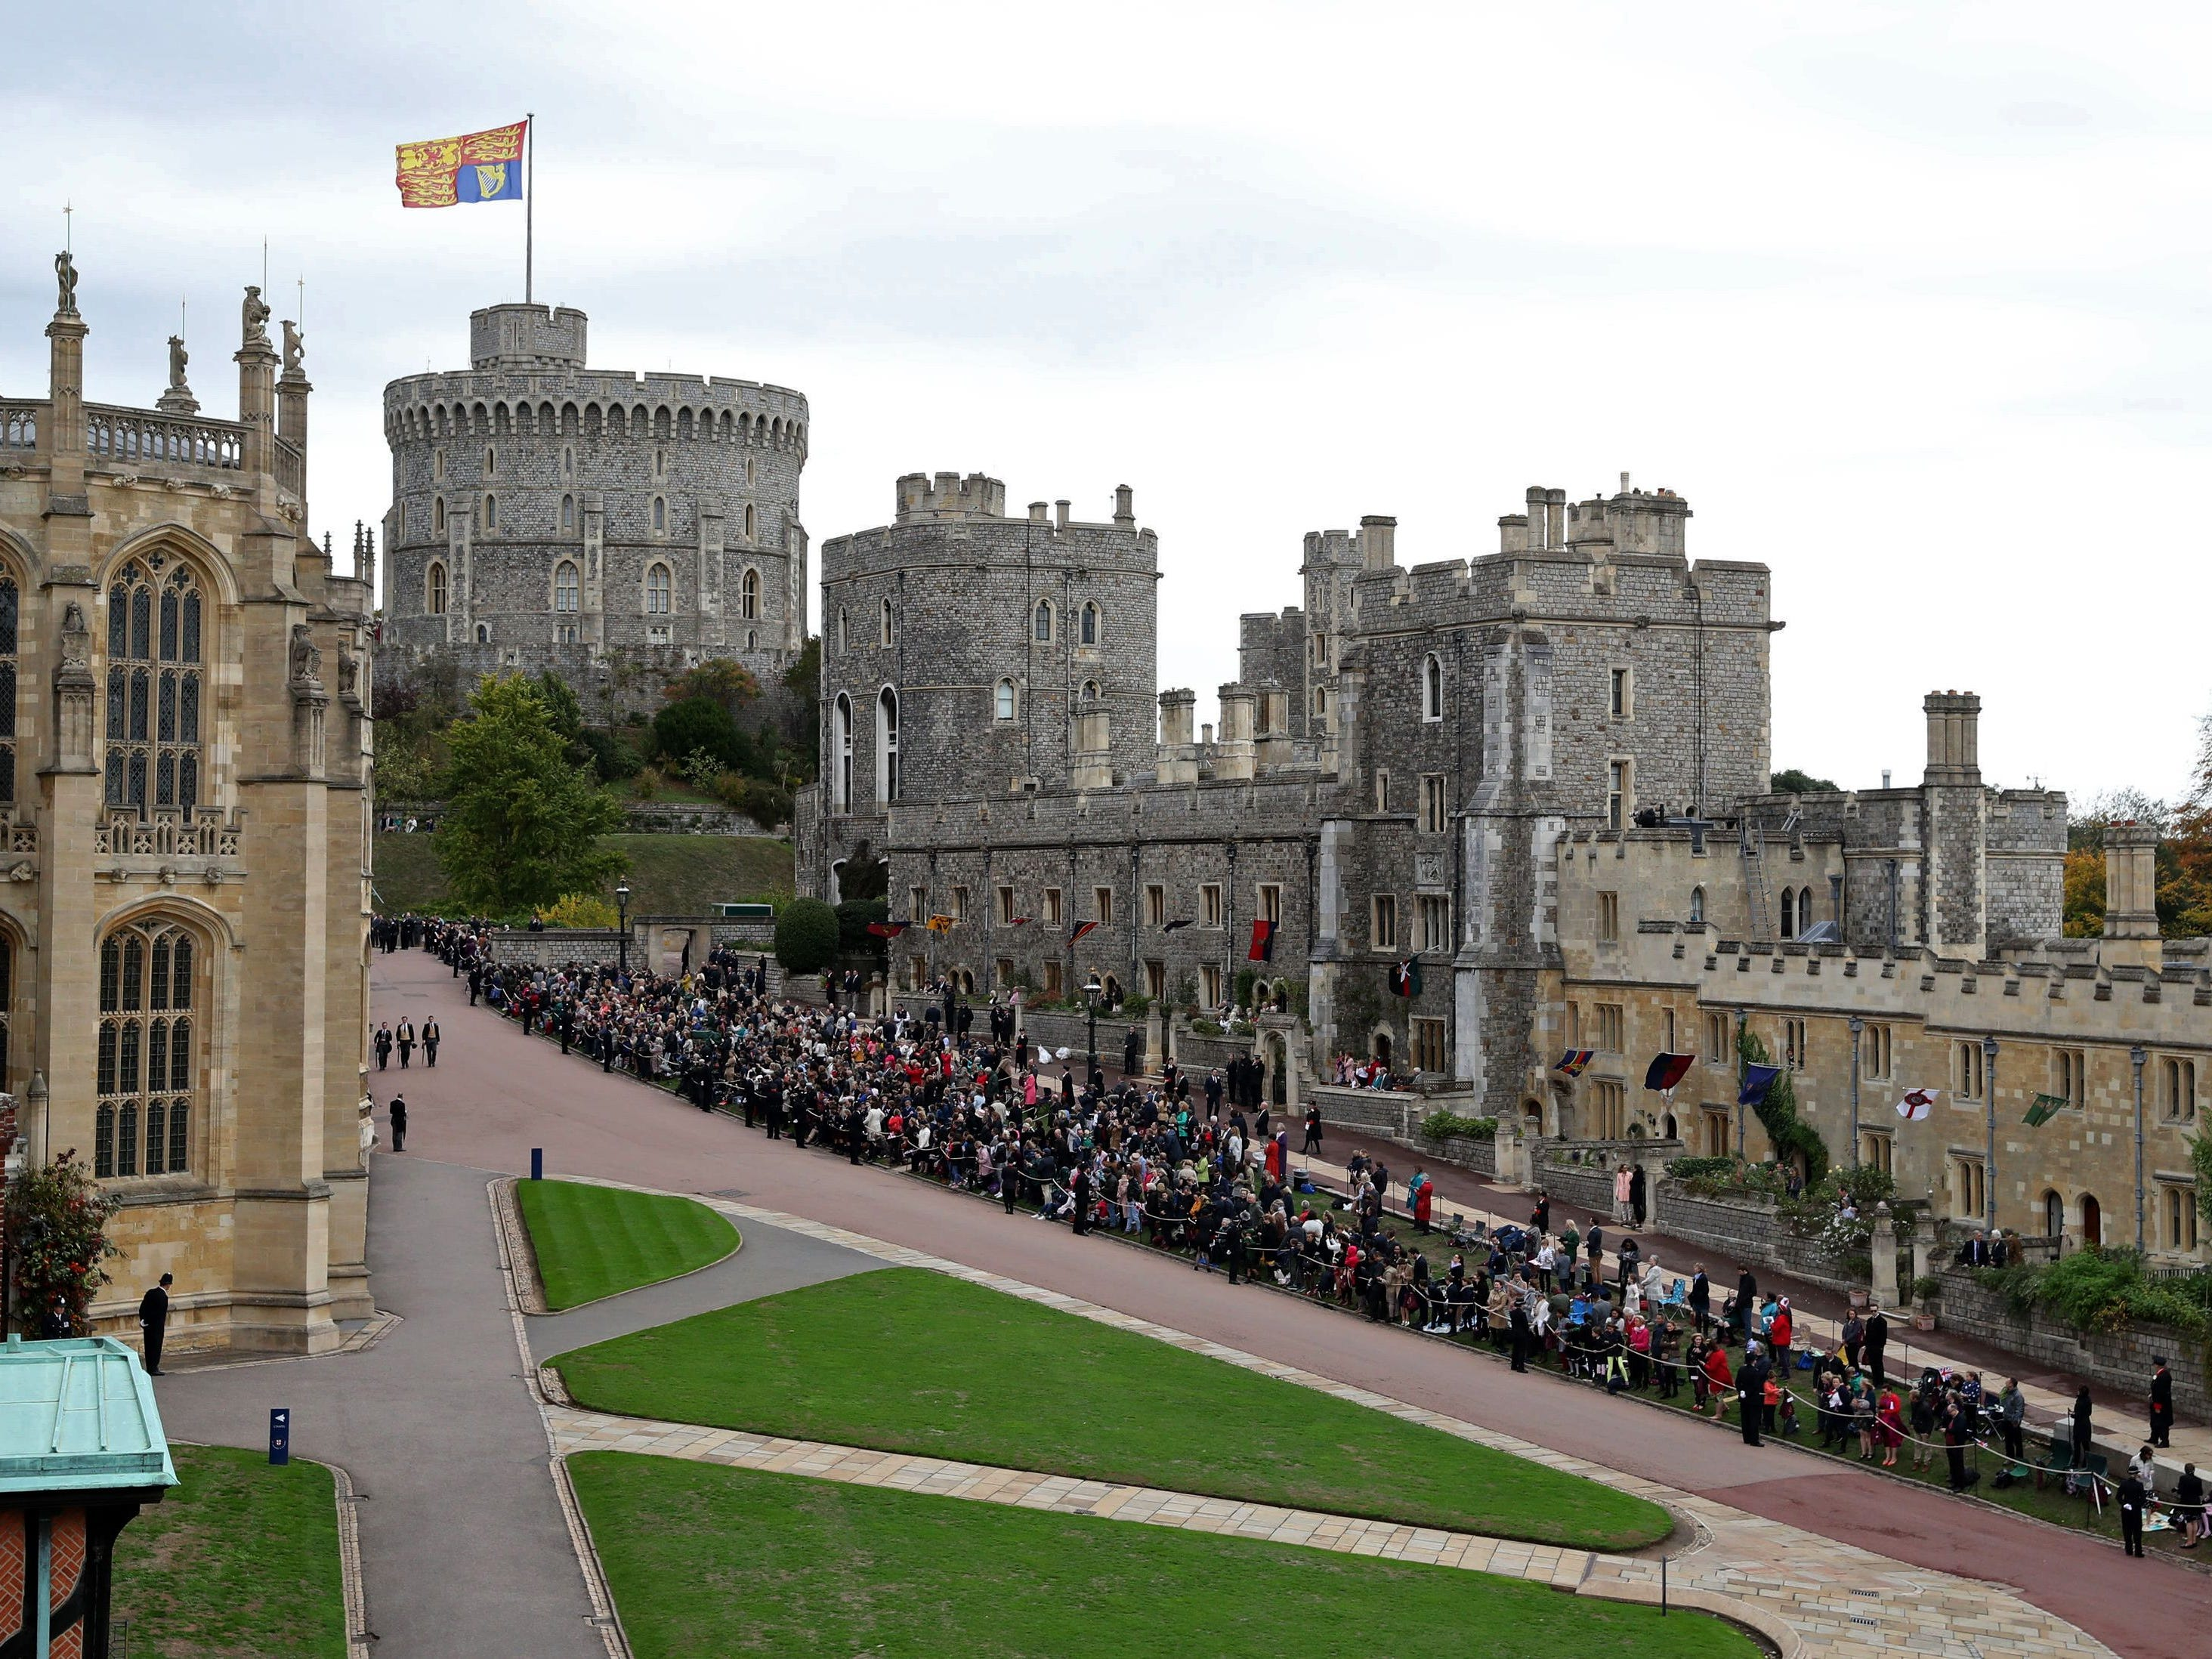 Royal well-wishers wait to see the wedding procession of Britain's Princess Eugenie of York and her new husband Jack Brooksbank at Windsor Castle.